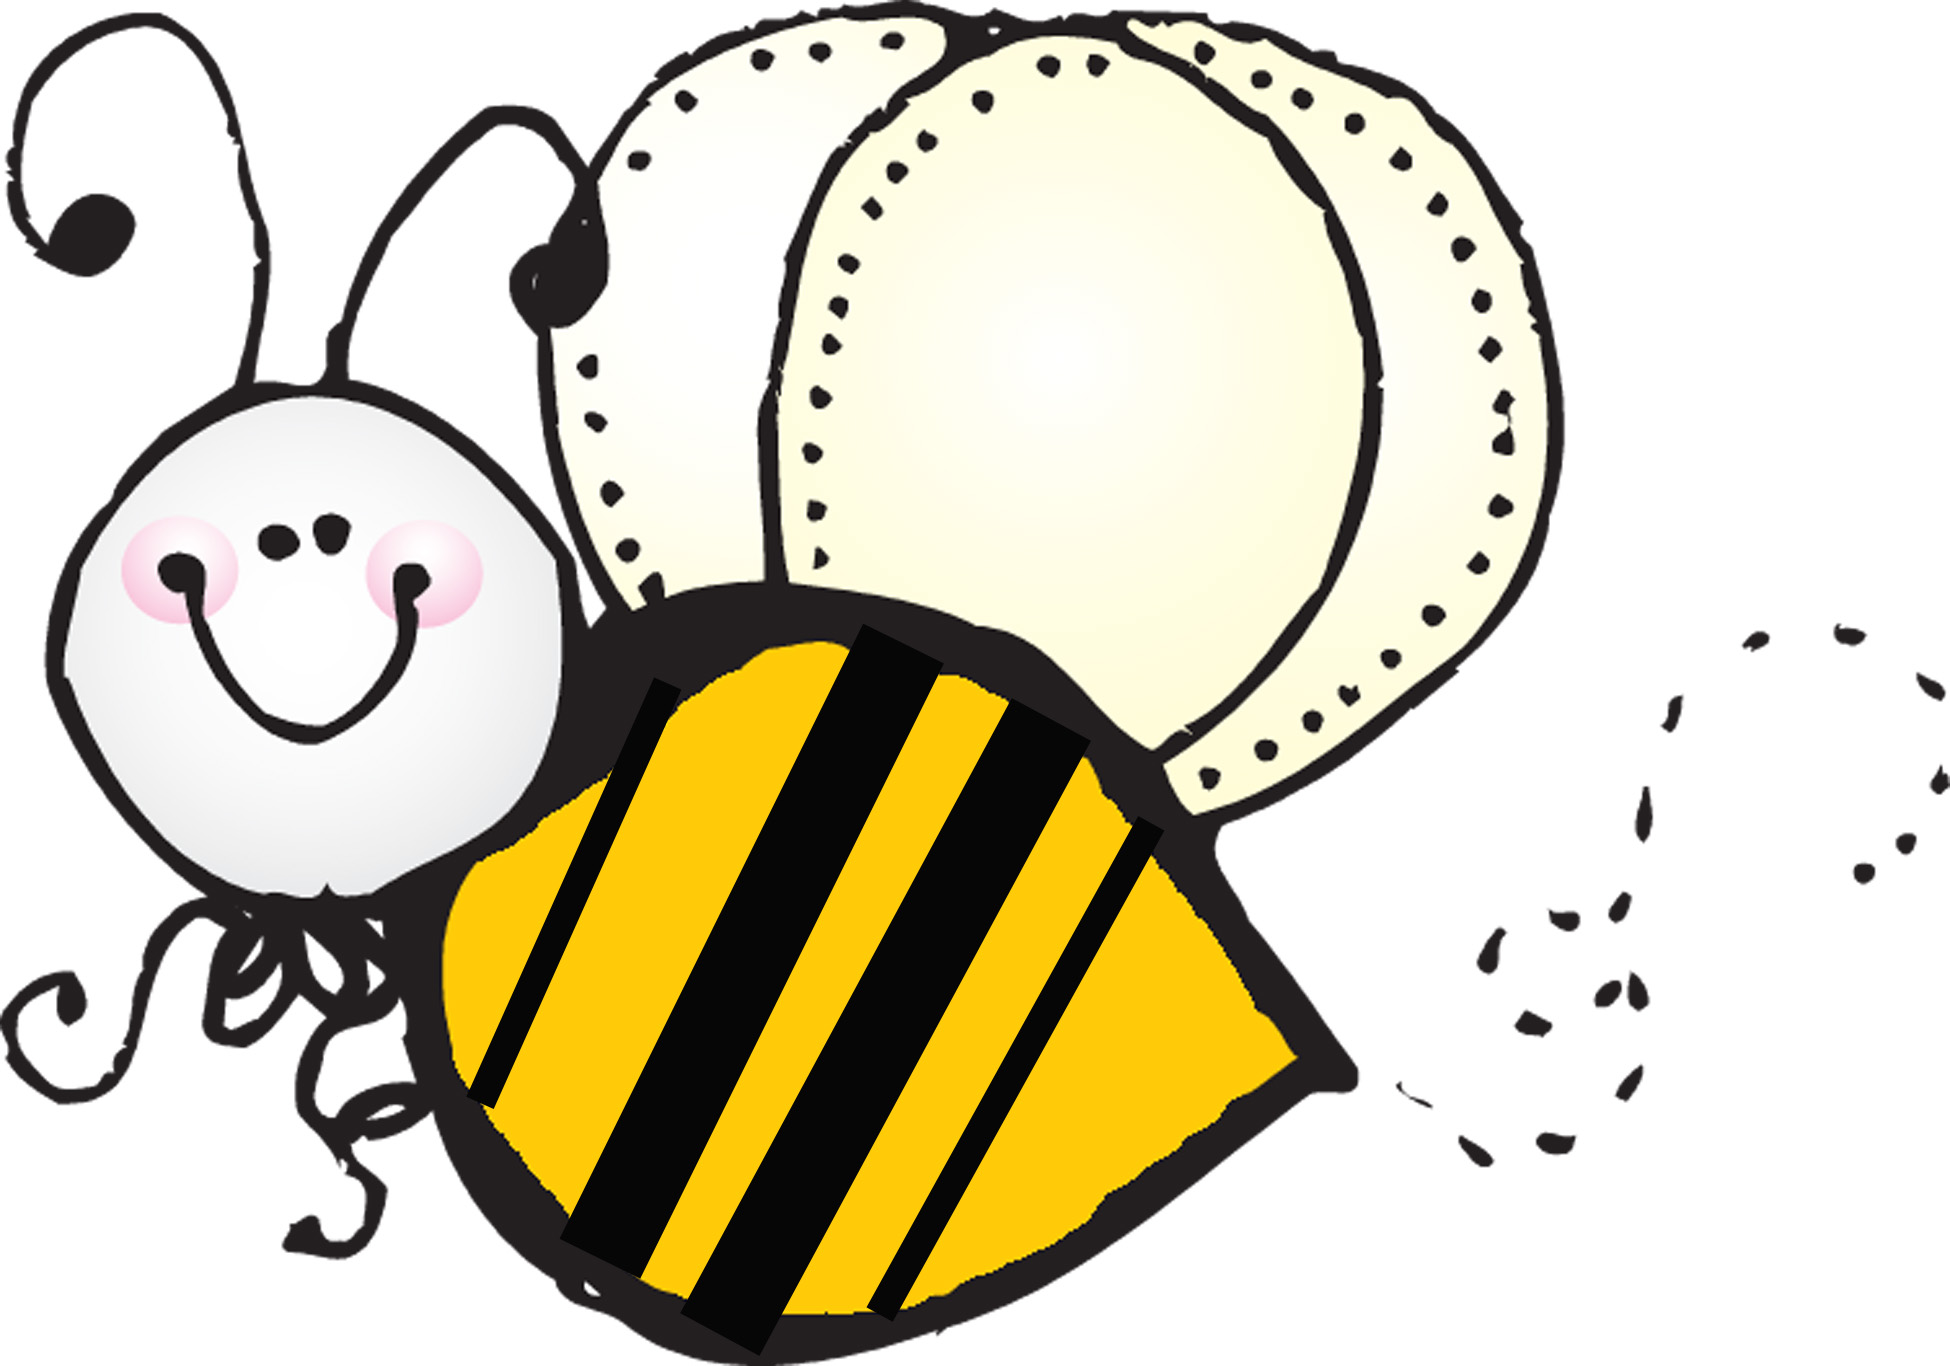 Spell Bee Wallpapers - Clipart Library. -Spell Bee Wallpapers - Clipart library. ladybug | Oopsey Daisy-6